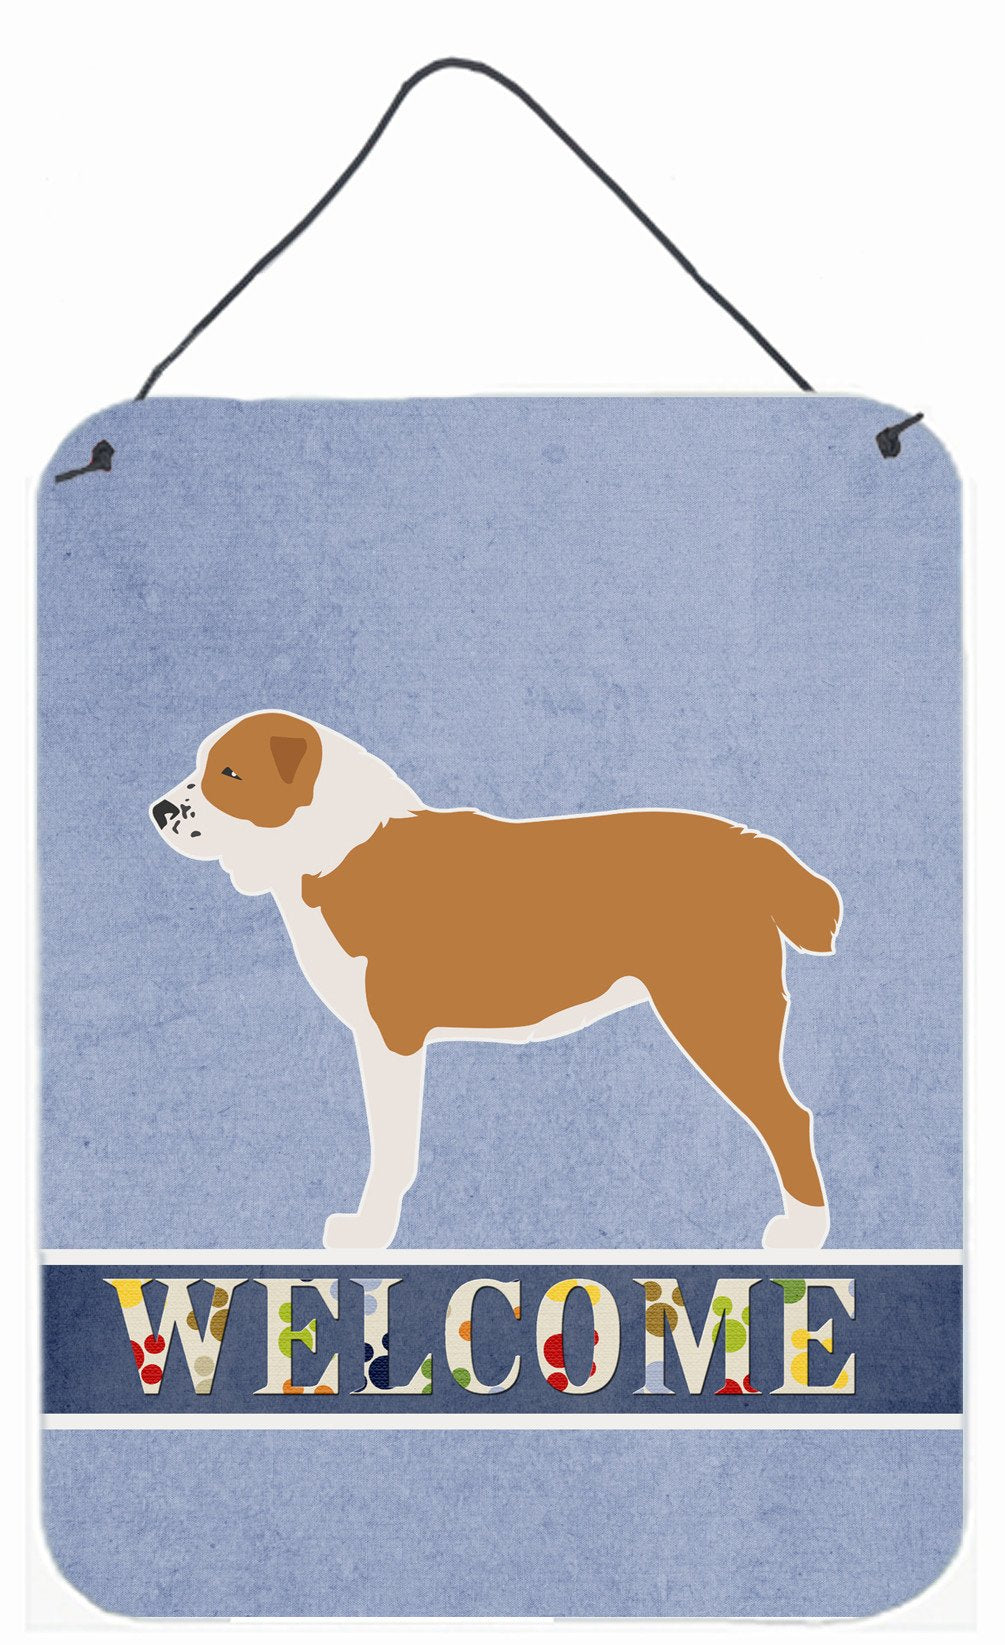 Central Asian Shepherd Dog Welcome Wall or Door Hanging Prints BB5532DS1216 by Caroline's Treasures